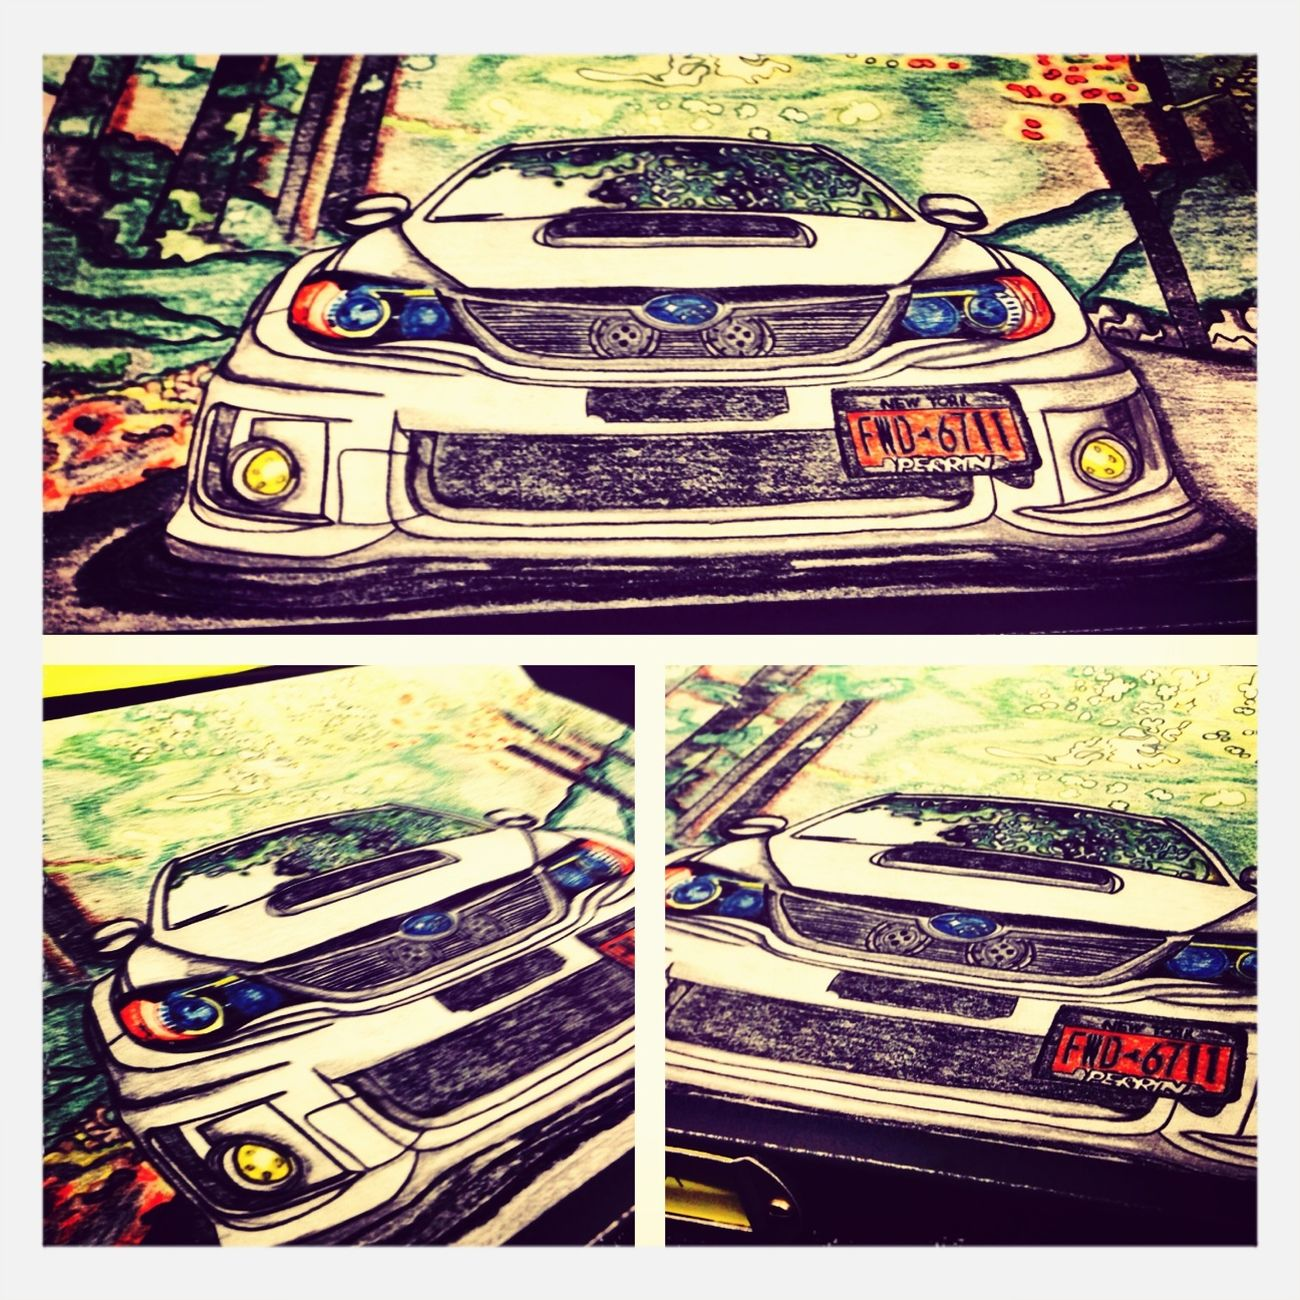 Self Art Project /subaru Wrx Sti Edition